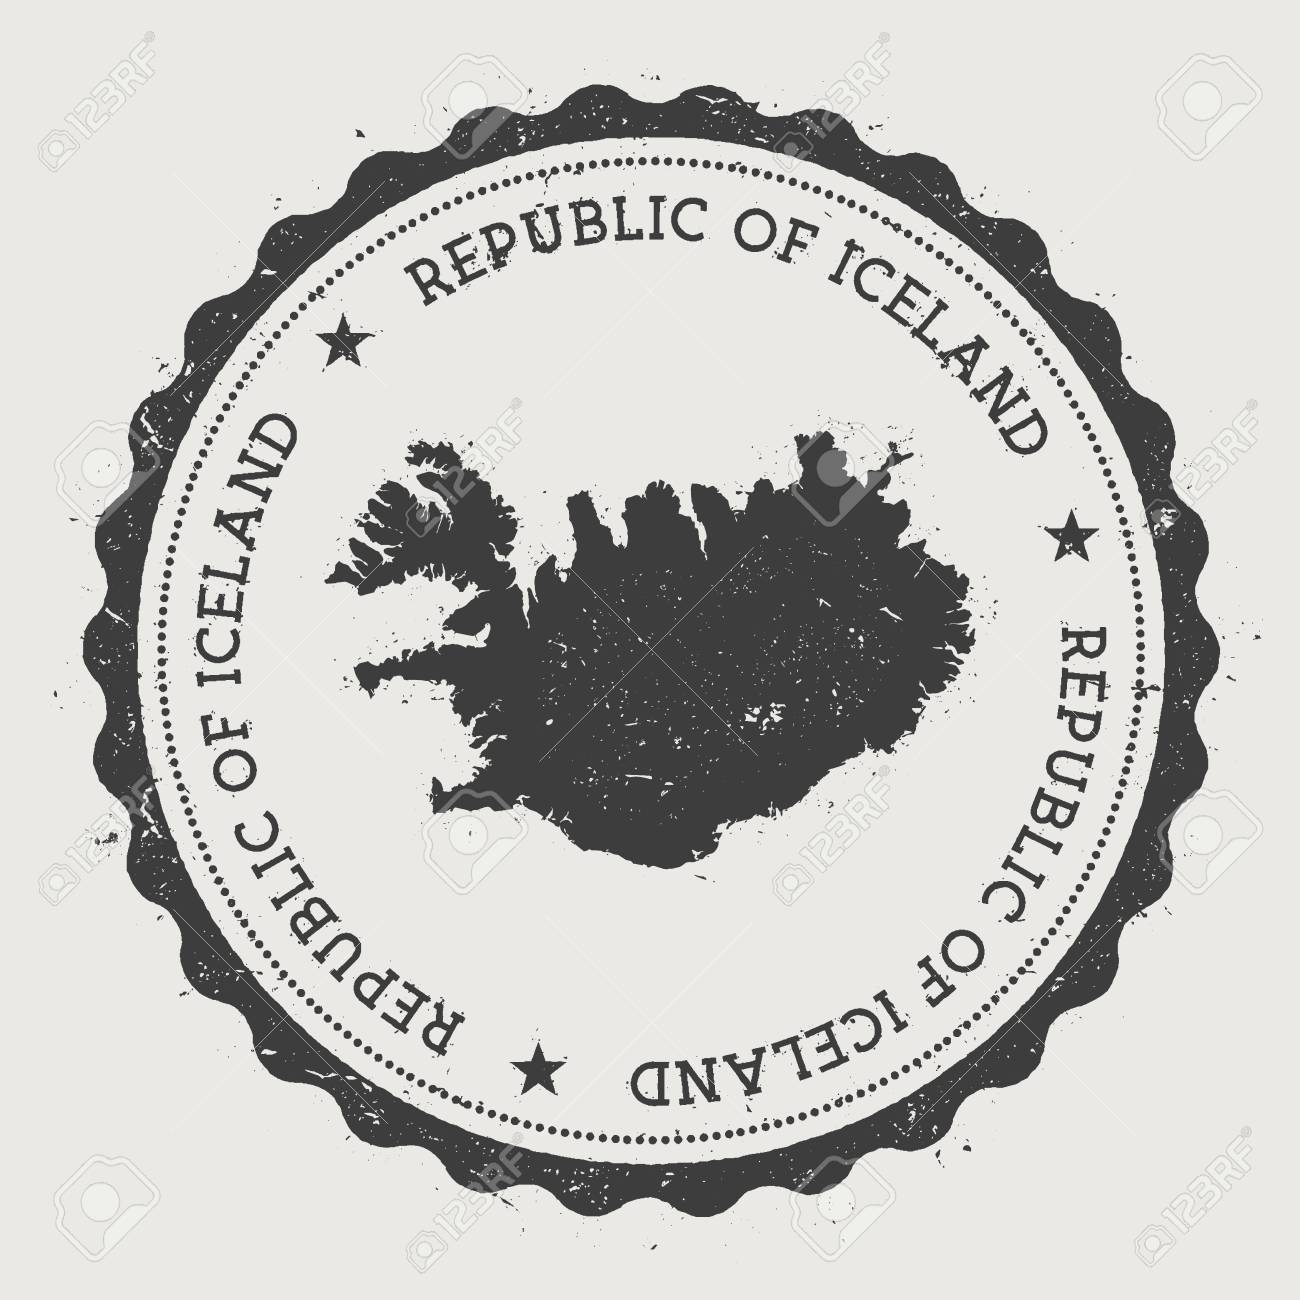 Iceland Hipster Round Rubber Stamp With Country Map Vintage Passport Circular Text And